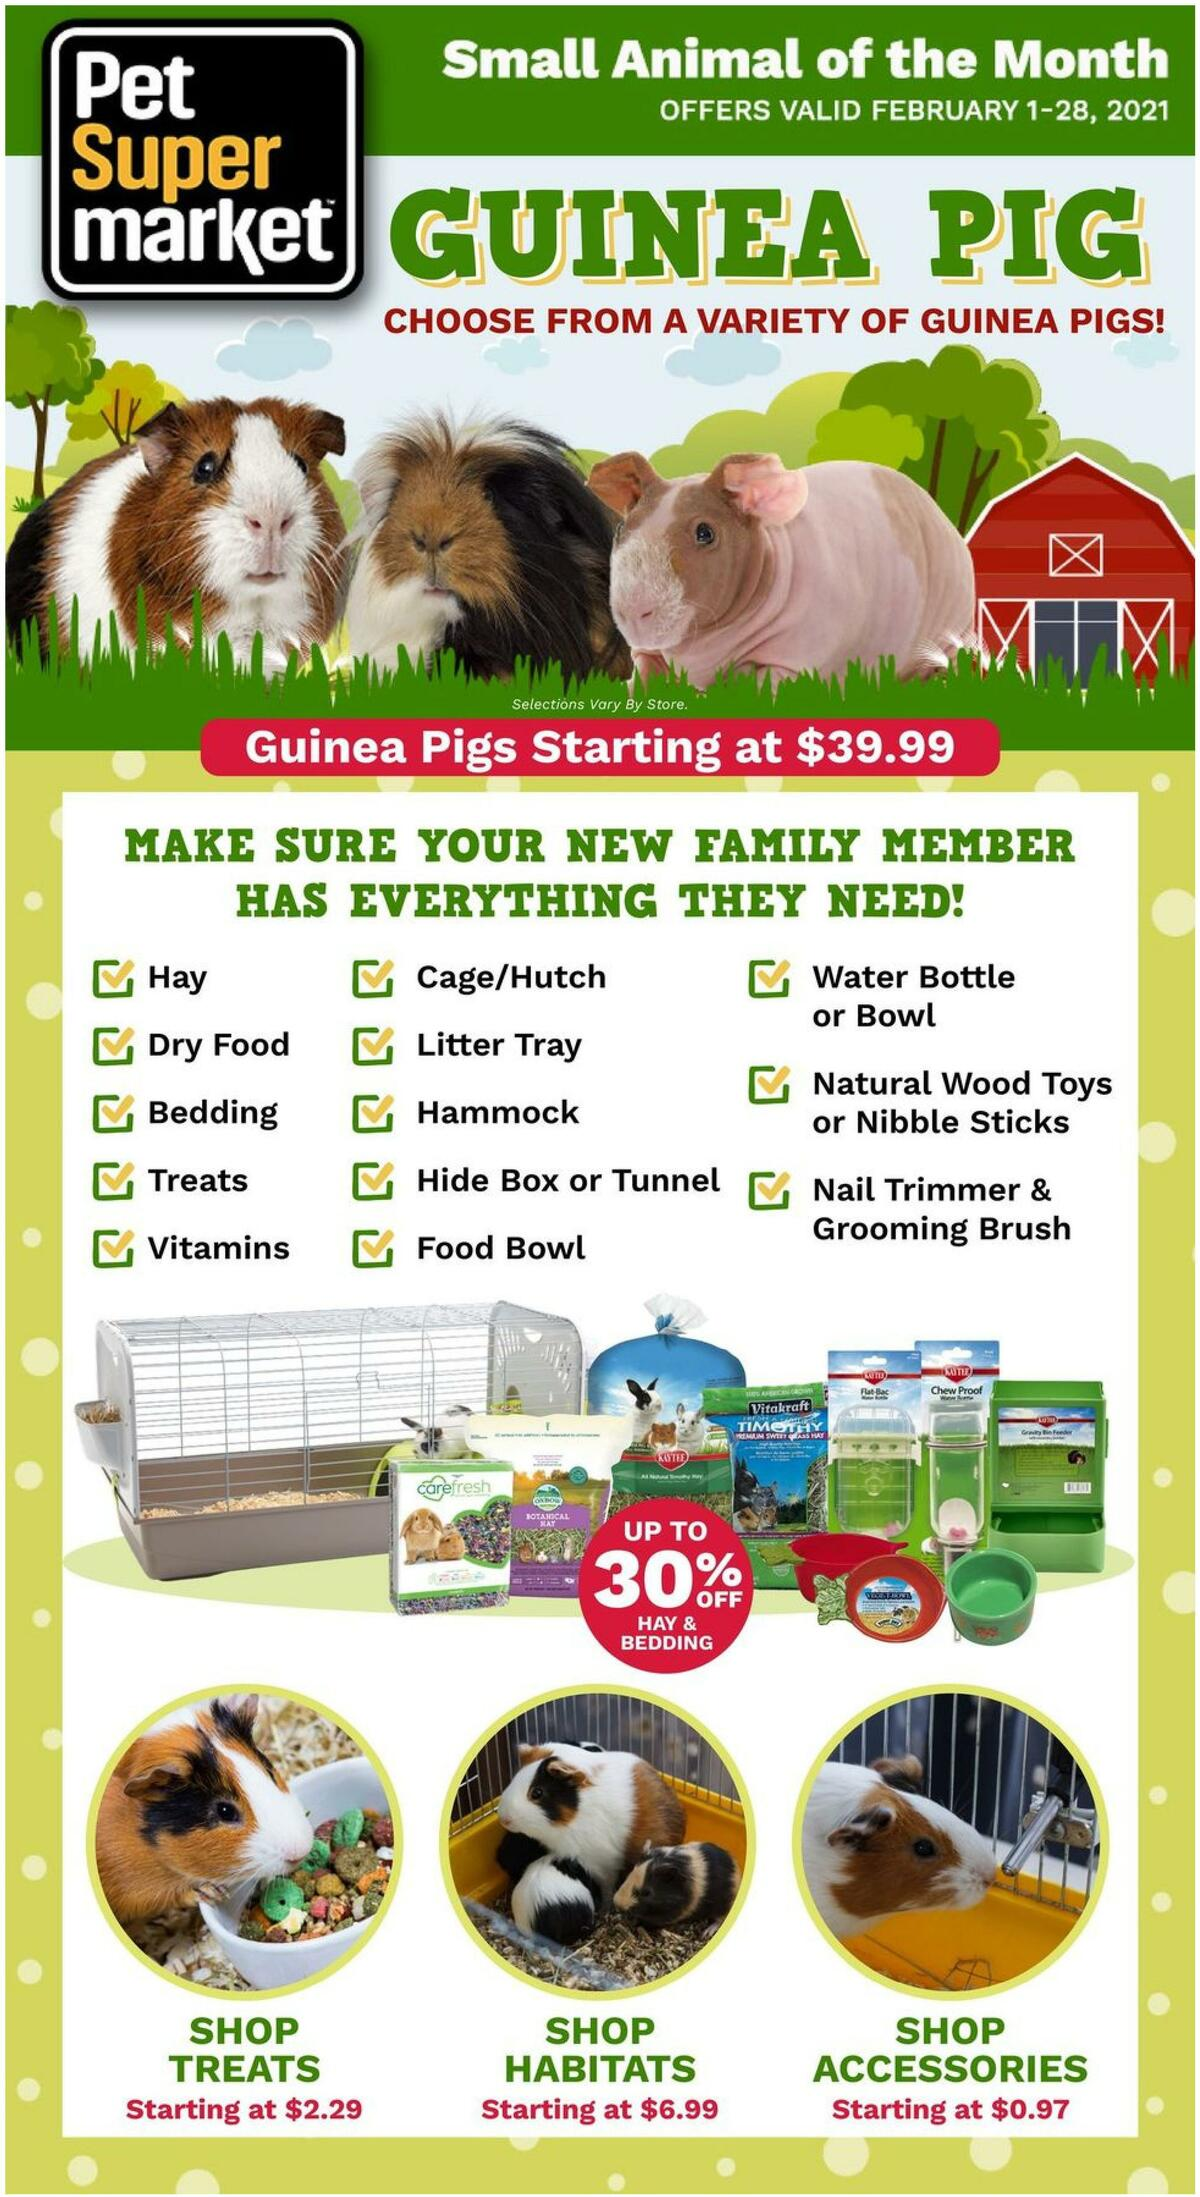 Pet Supermarket Guinea Pig Weekly Ad from February 1